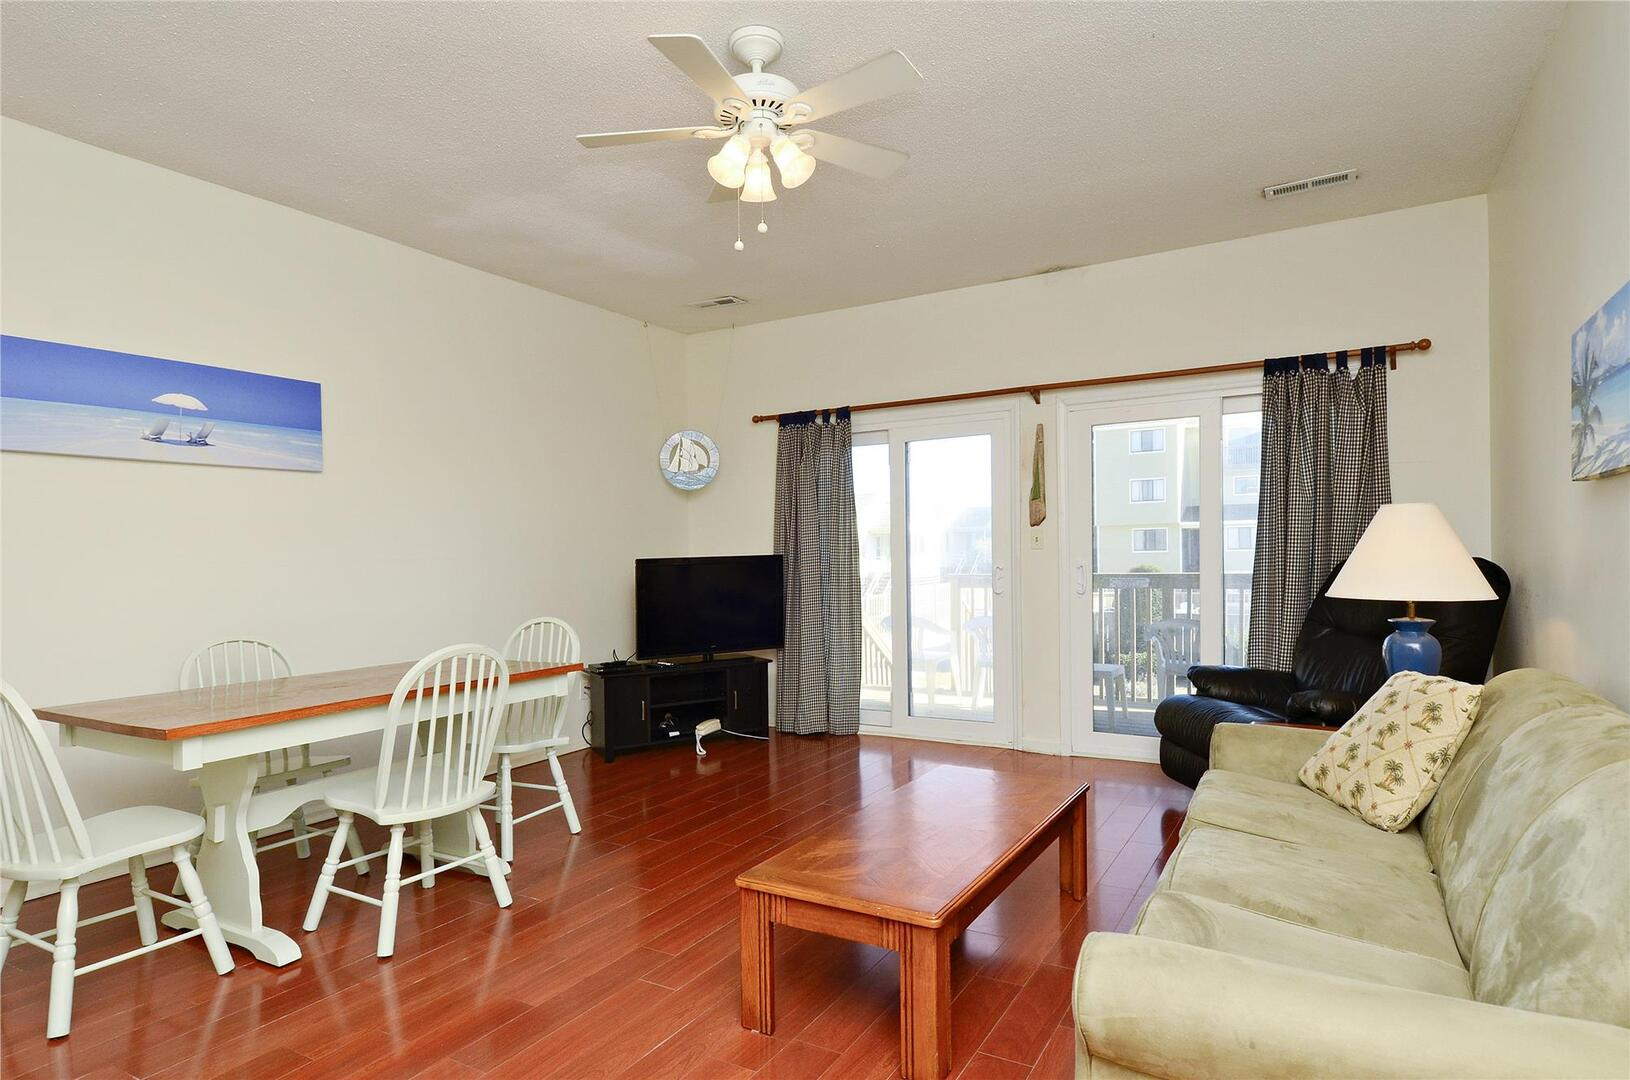 Main Level,LIving/Dining Area,